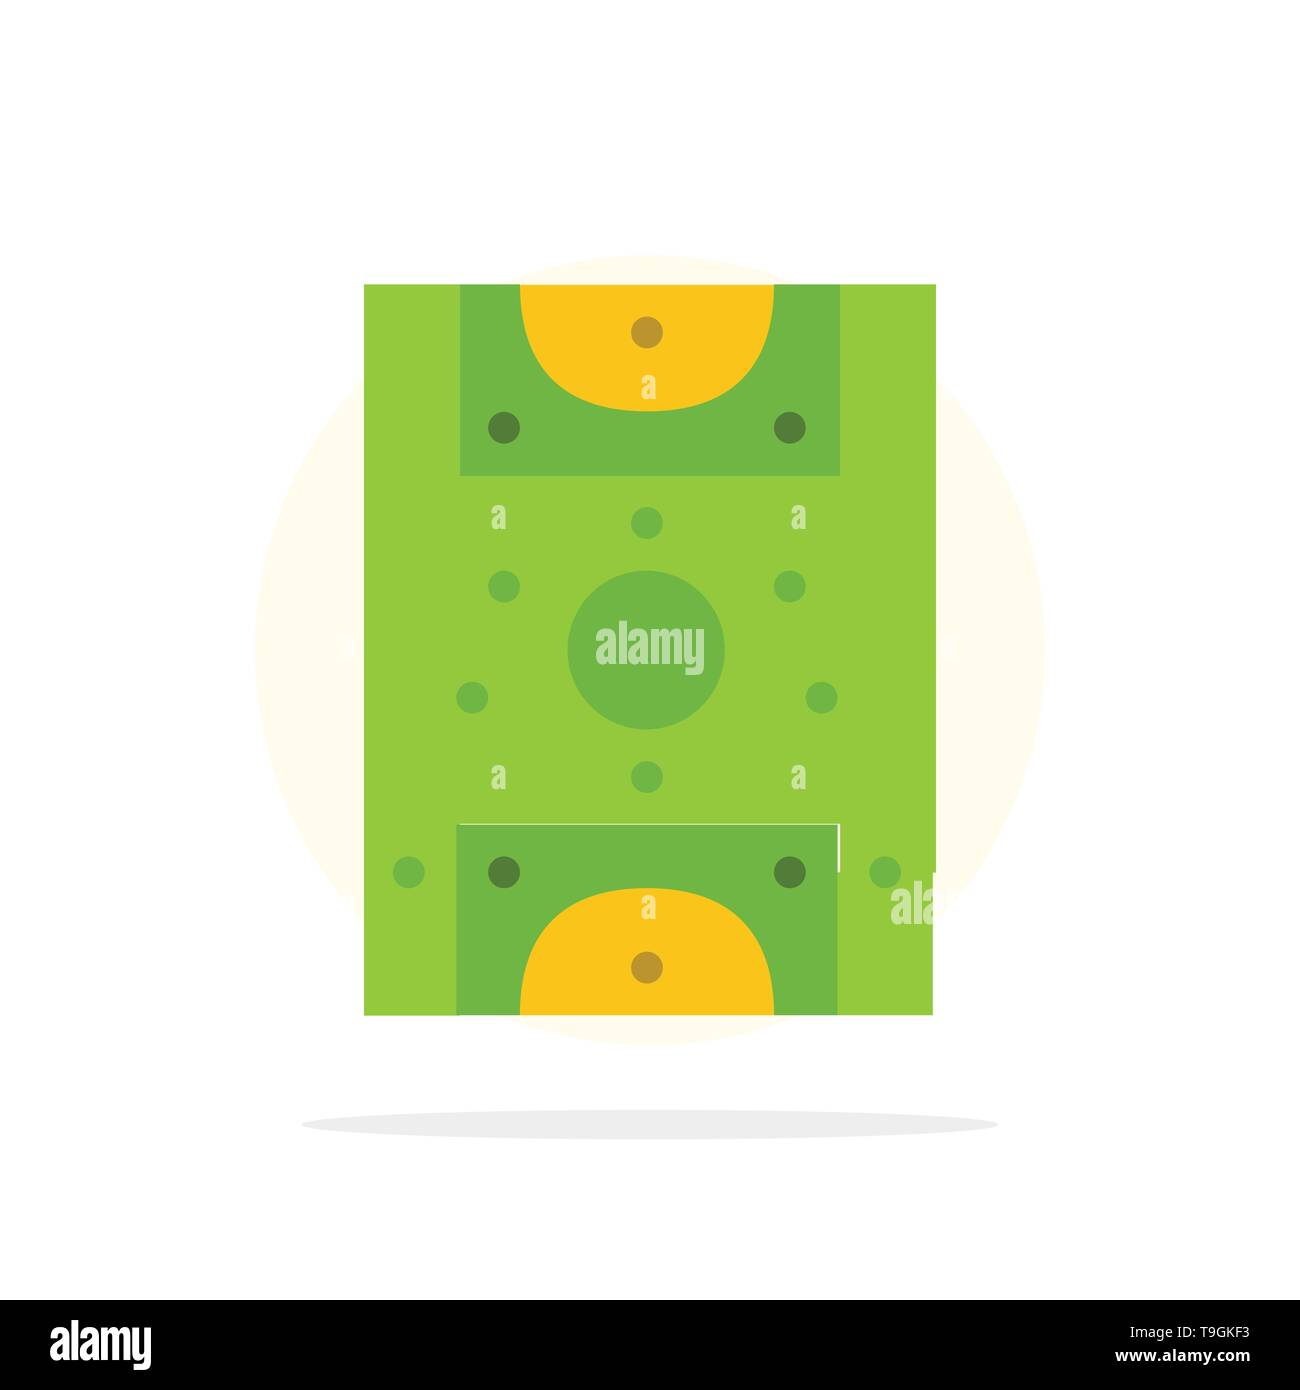 Entertainment, Game, Football, Field Abstract Circle Background Flat color Icon - Stock Image